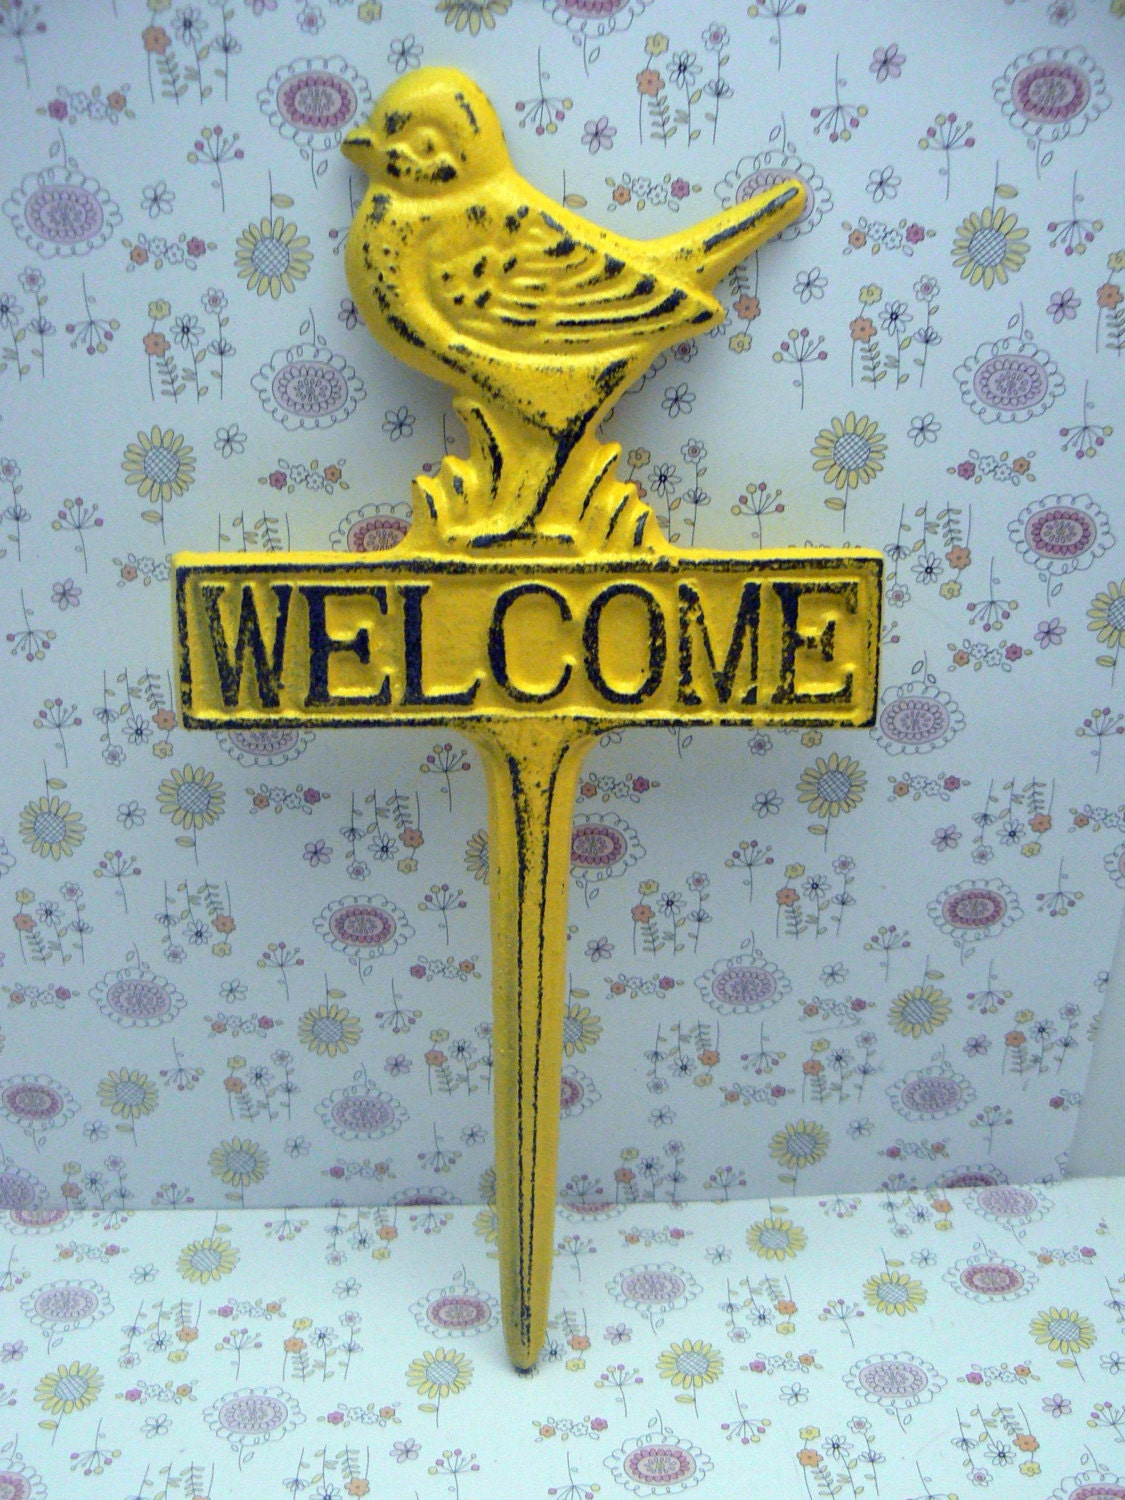 bird welcome cast iron yard stake shabby chic yellow garden patio